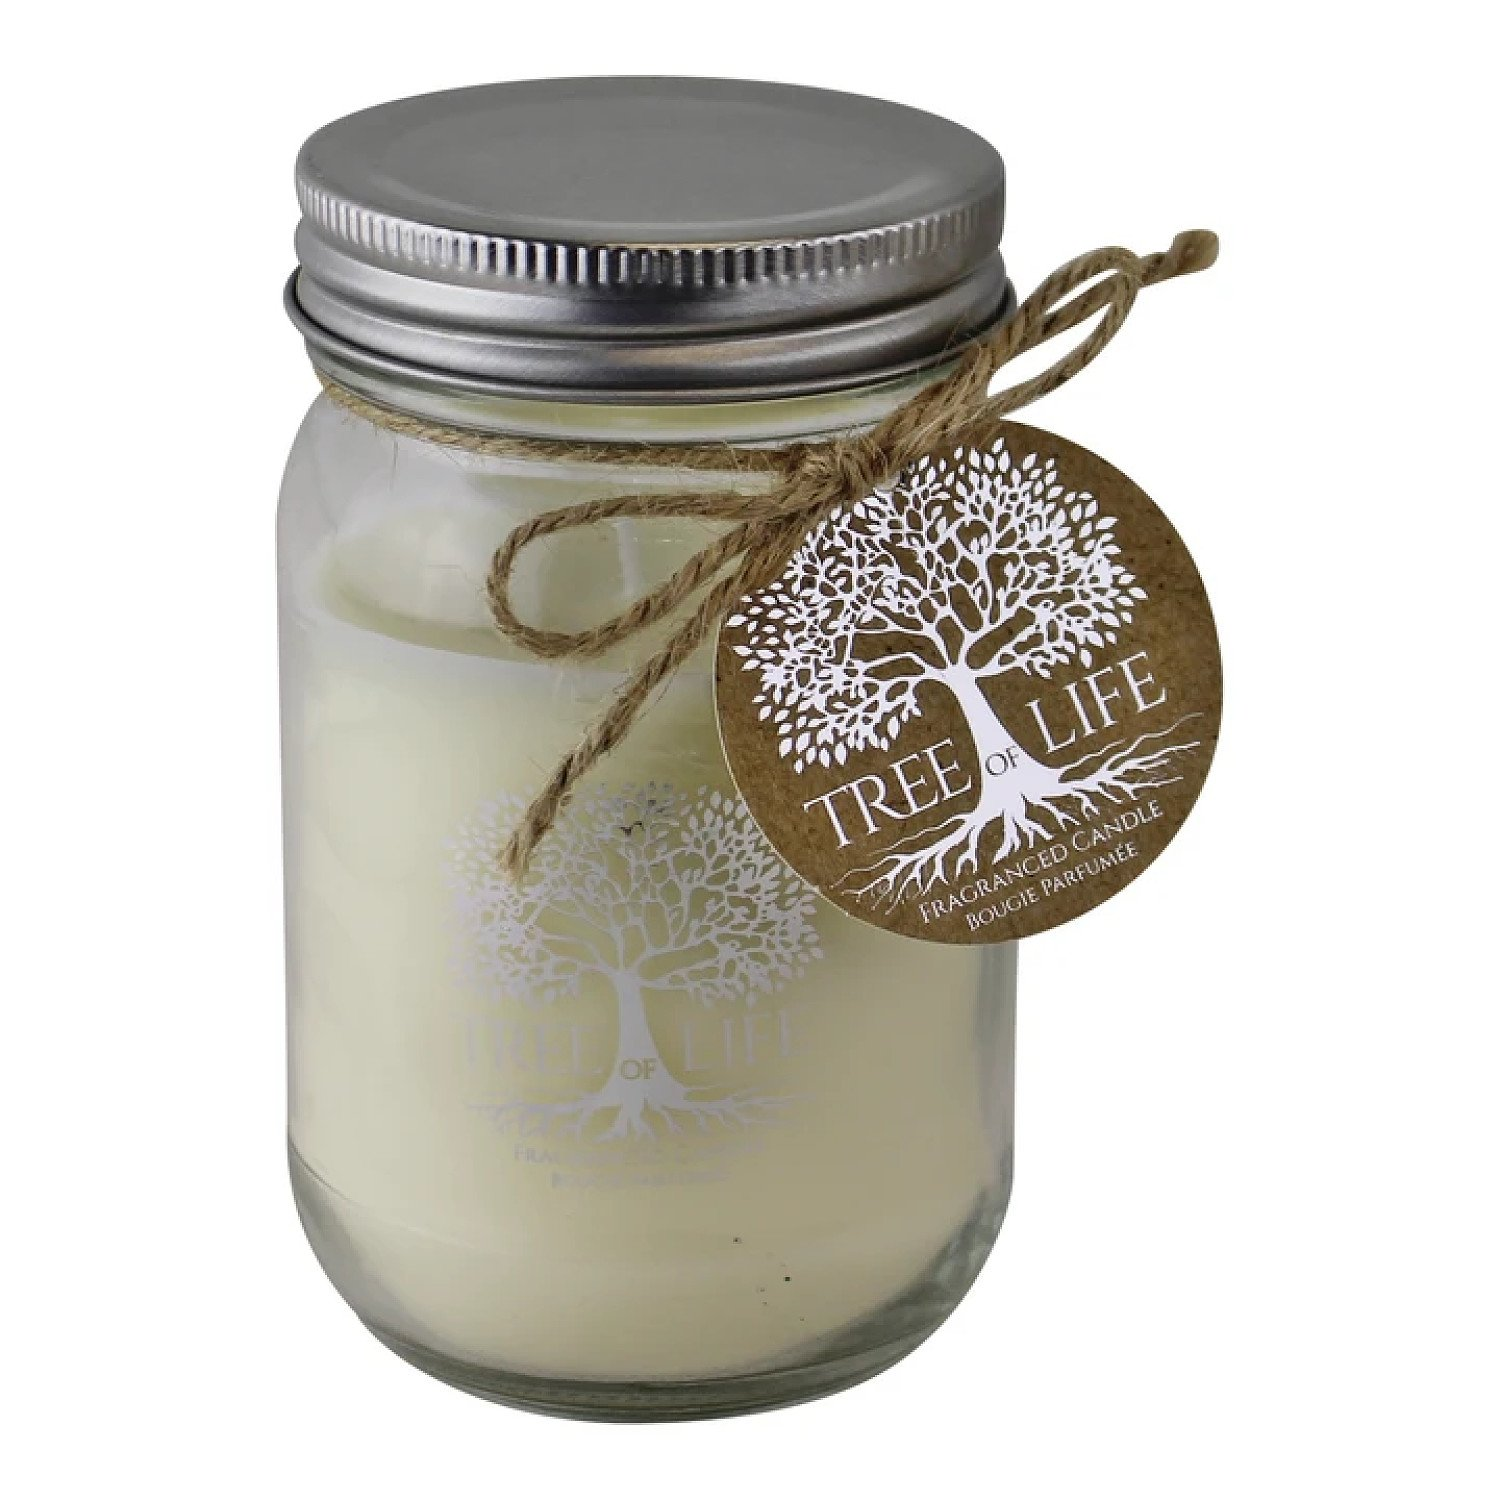 Tree Of Life Fragranced Candle In Glass Jar With Lid Free Postage